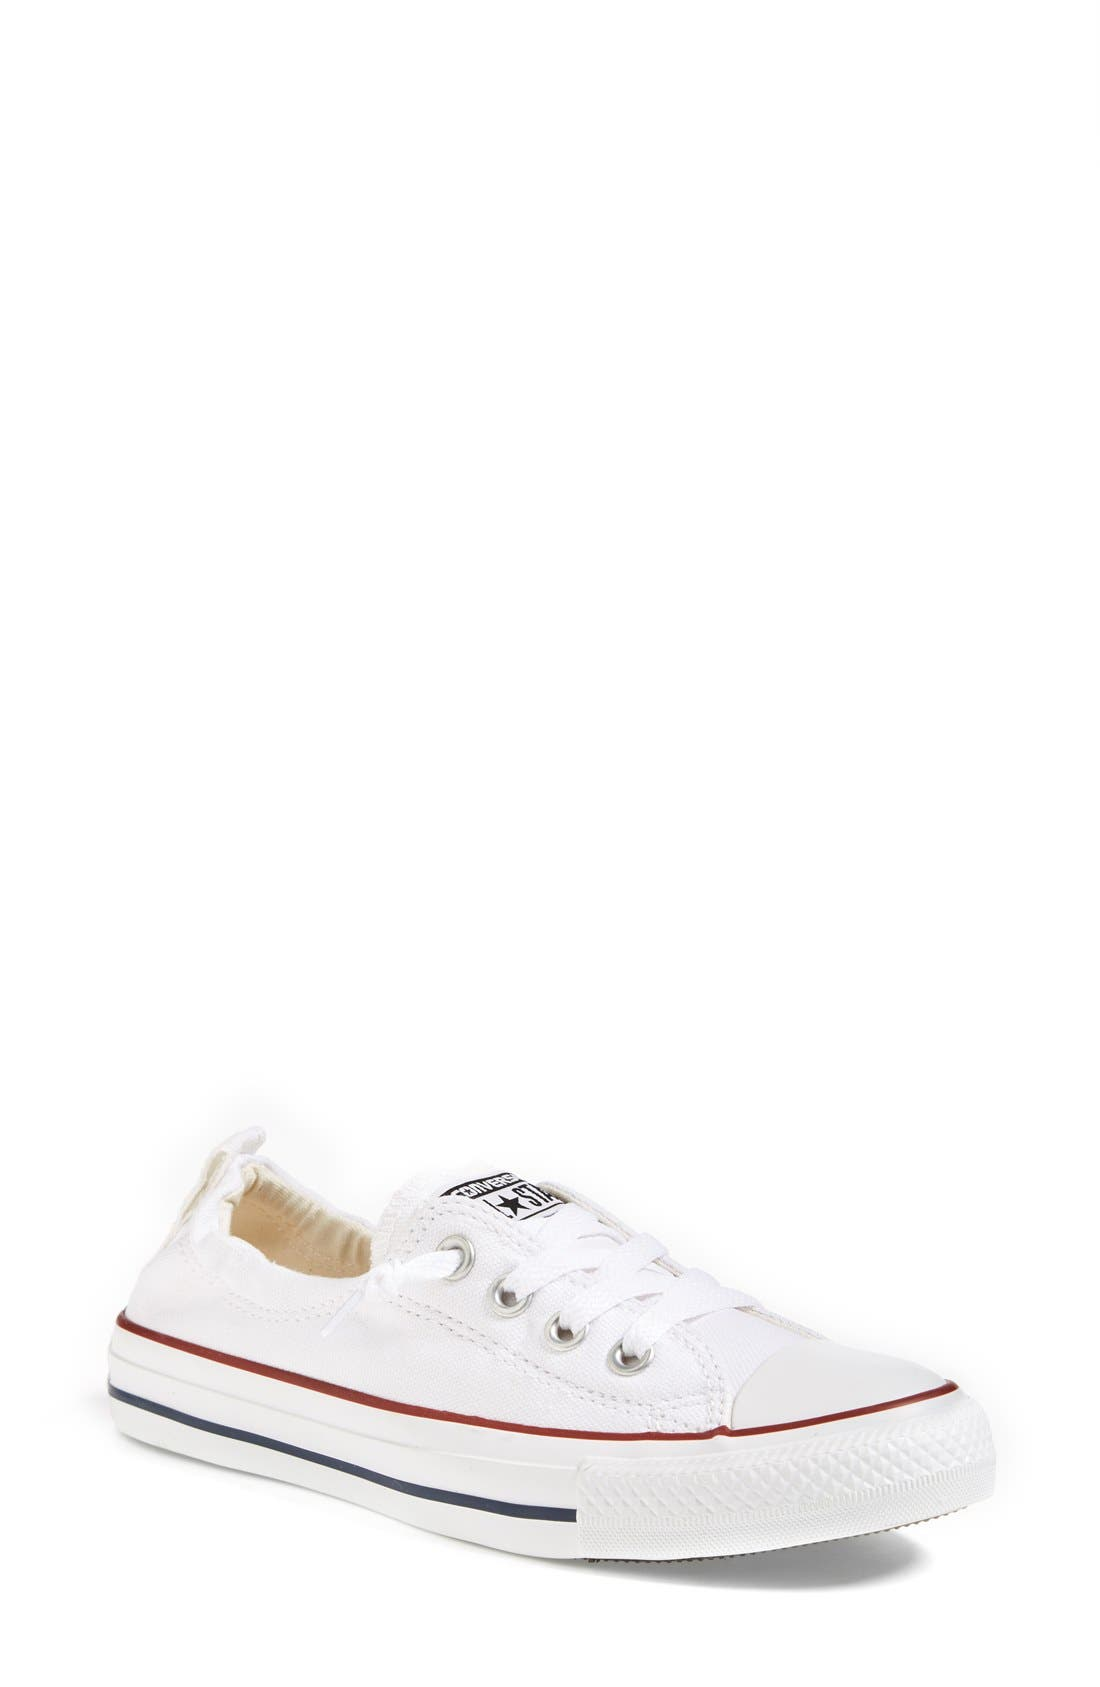 Alternate Image 1 Selected - Converse Chuck Taylor® 'Shoreline' Sneaker (Women)